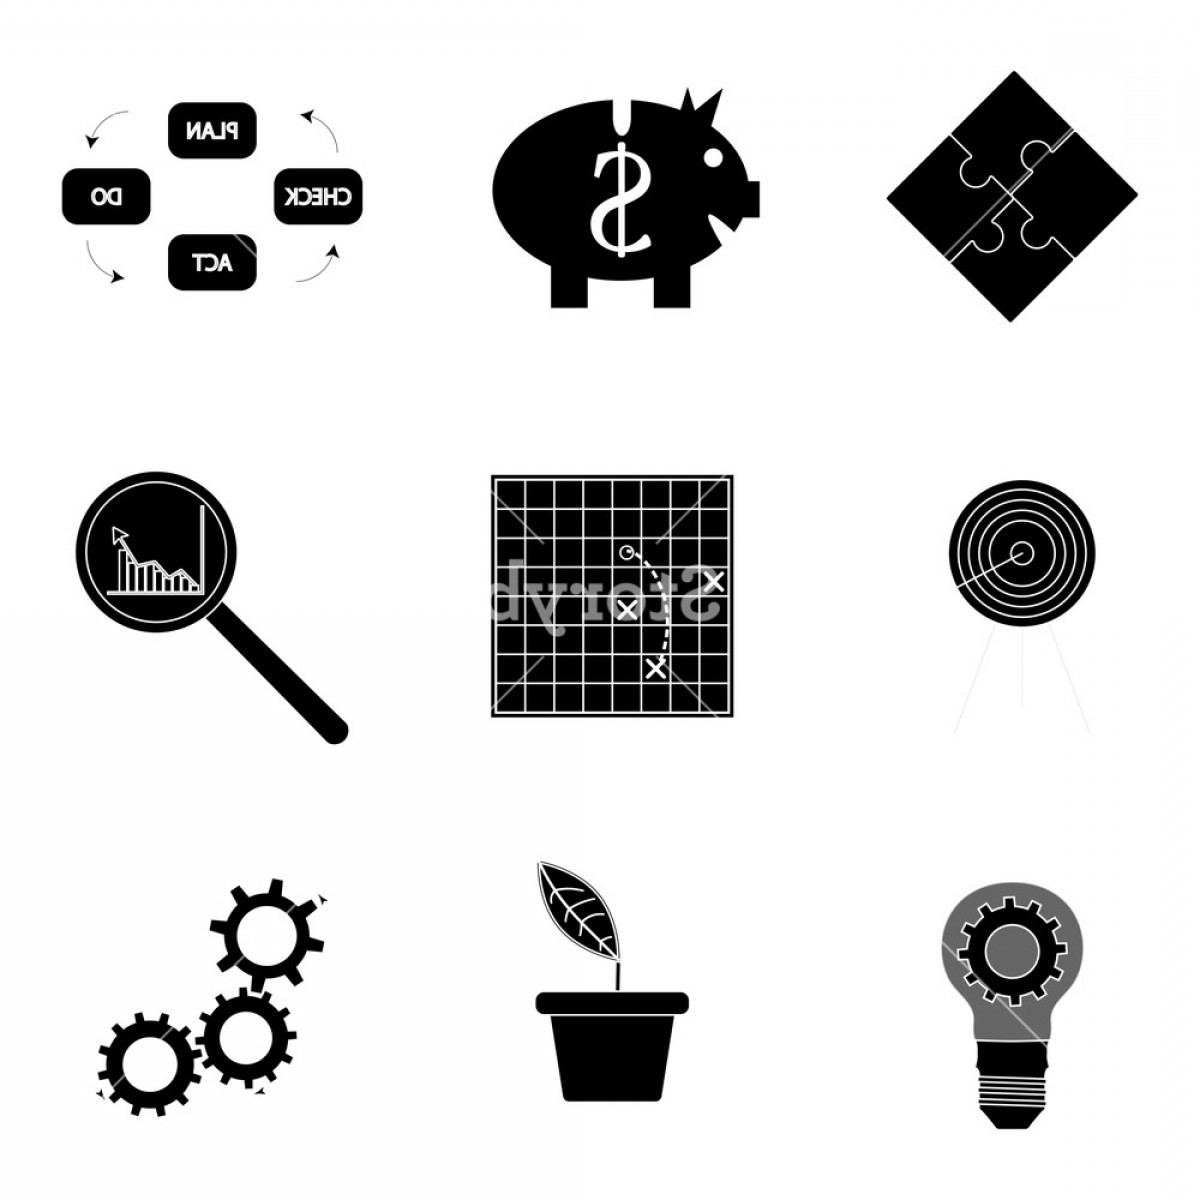 RZR Vector Black And White: Black Silhouette Business Icons Analysis And Tactic Productivity Development And Optimization Vector Illustration Hzsghxd Jqaho